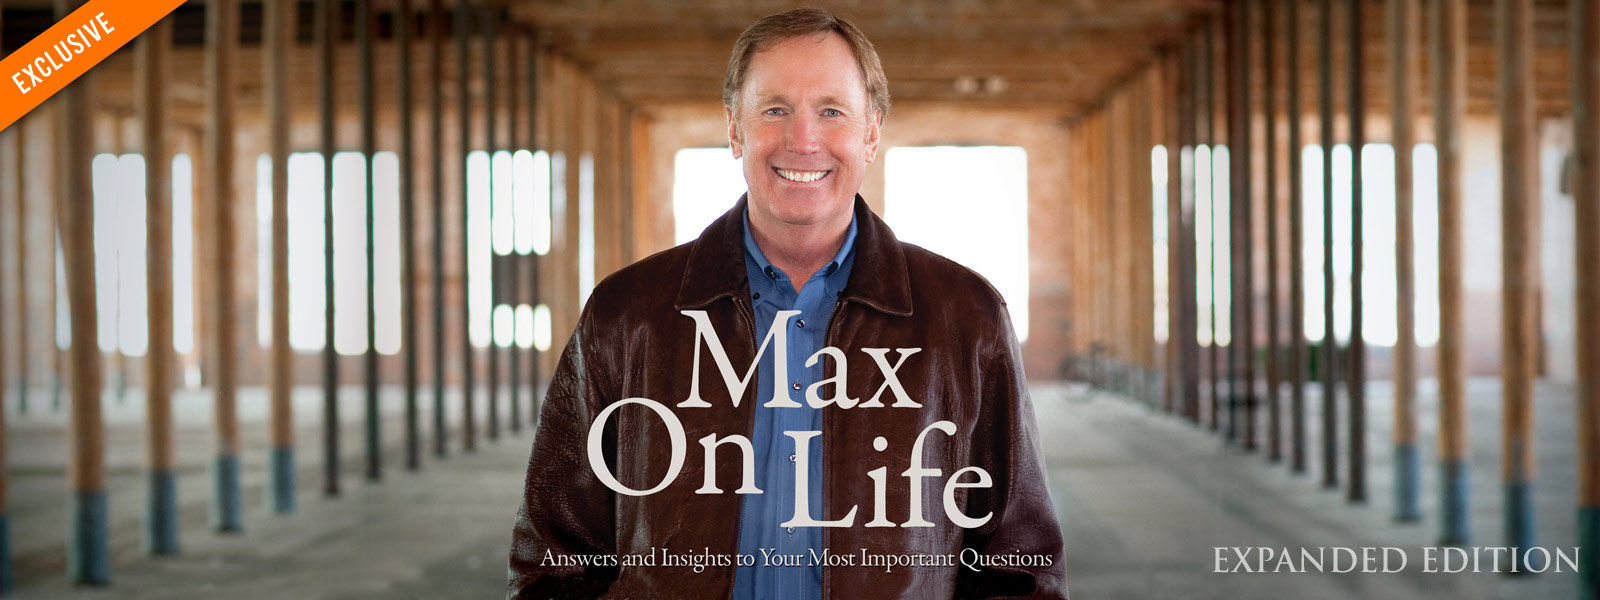 Max on Life - Expanded Edition